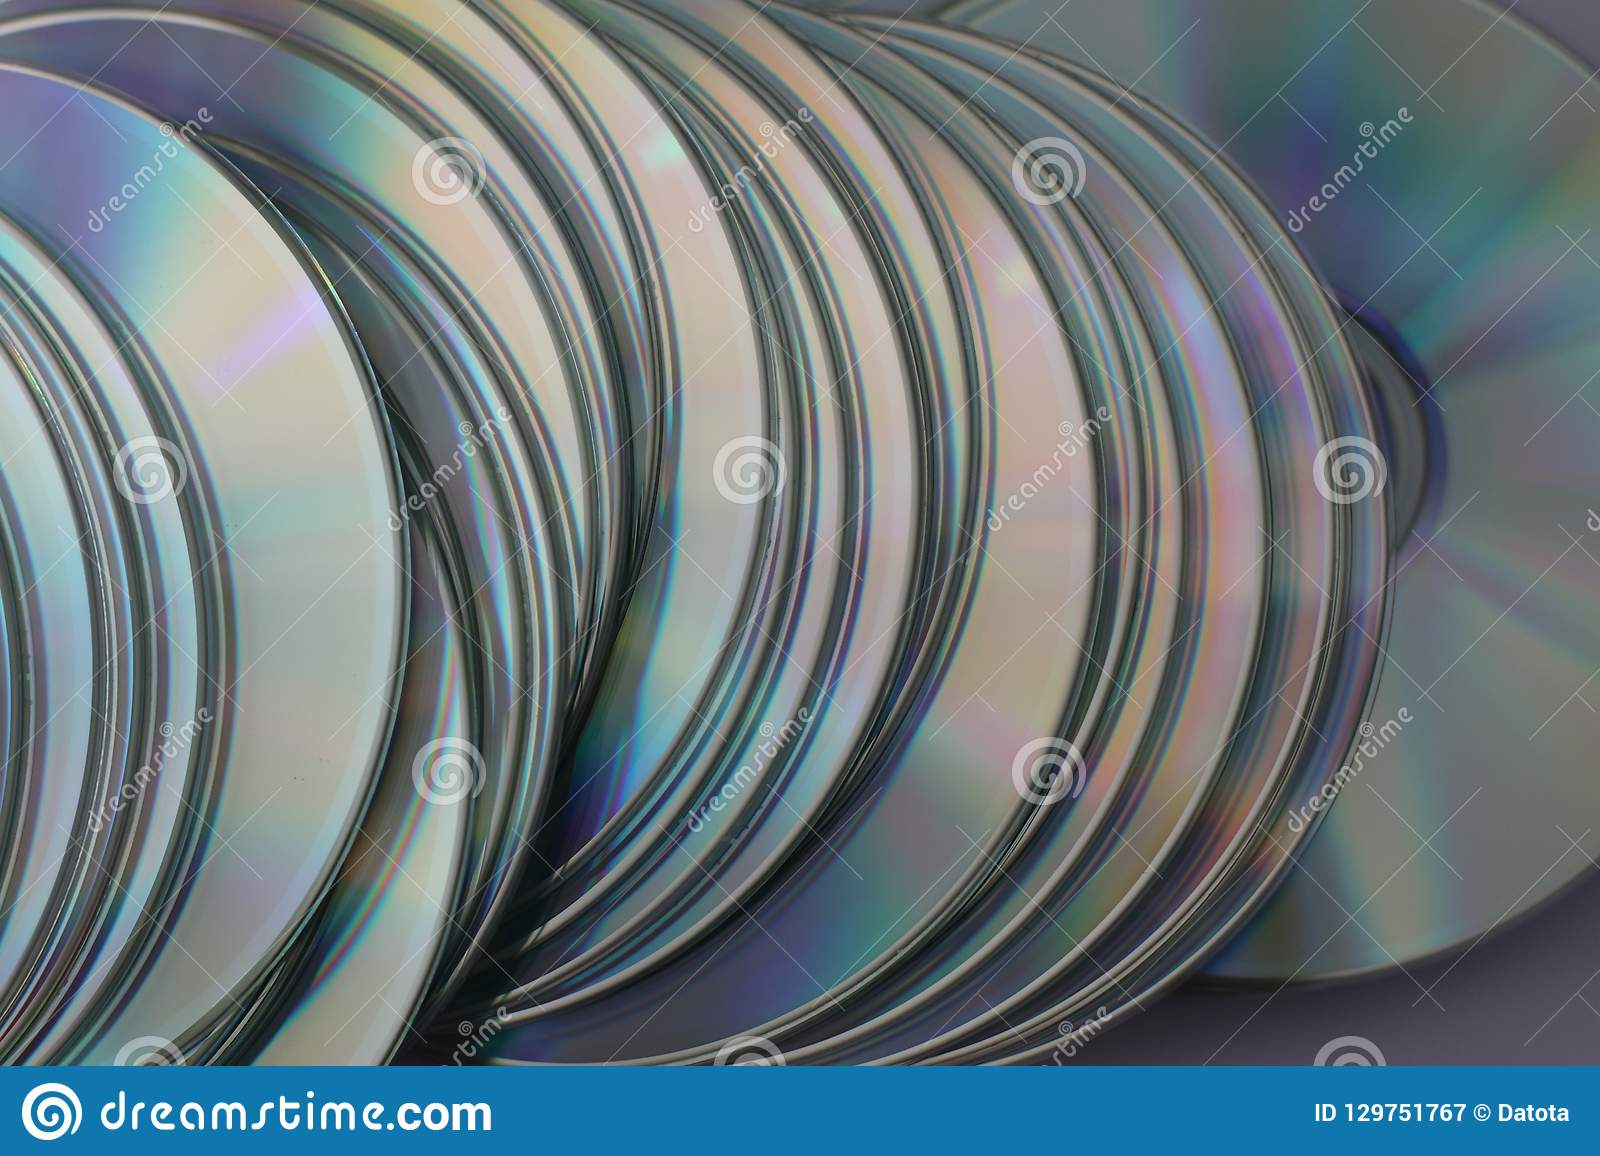 Much silver compact discs scattered on flatness